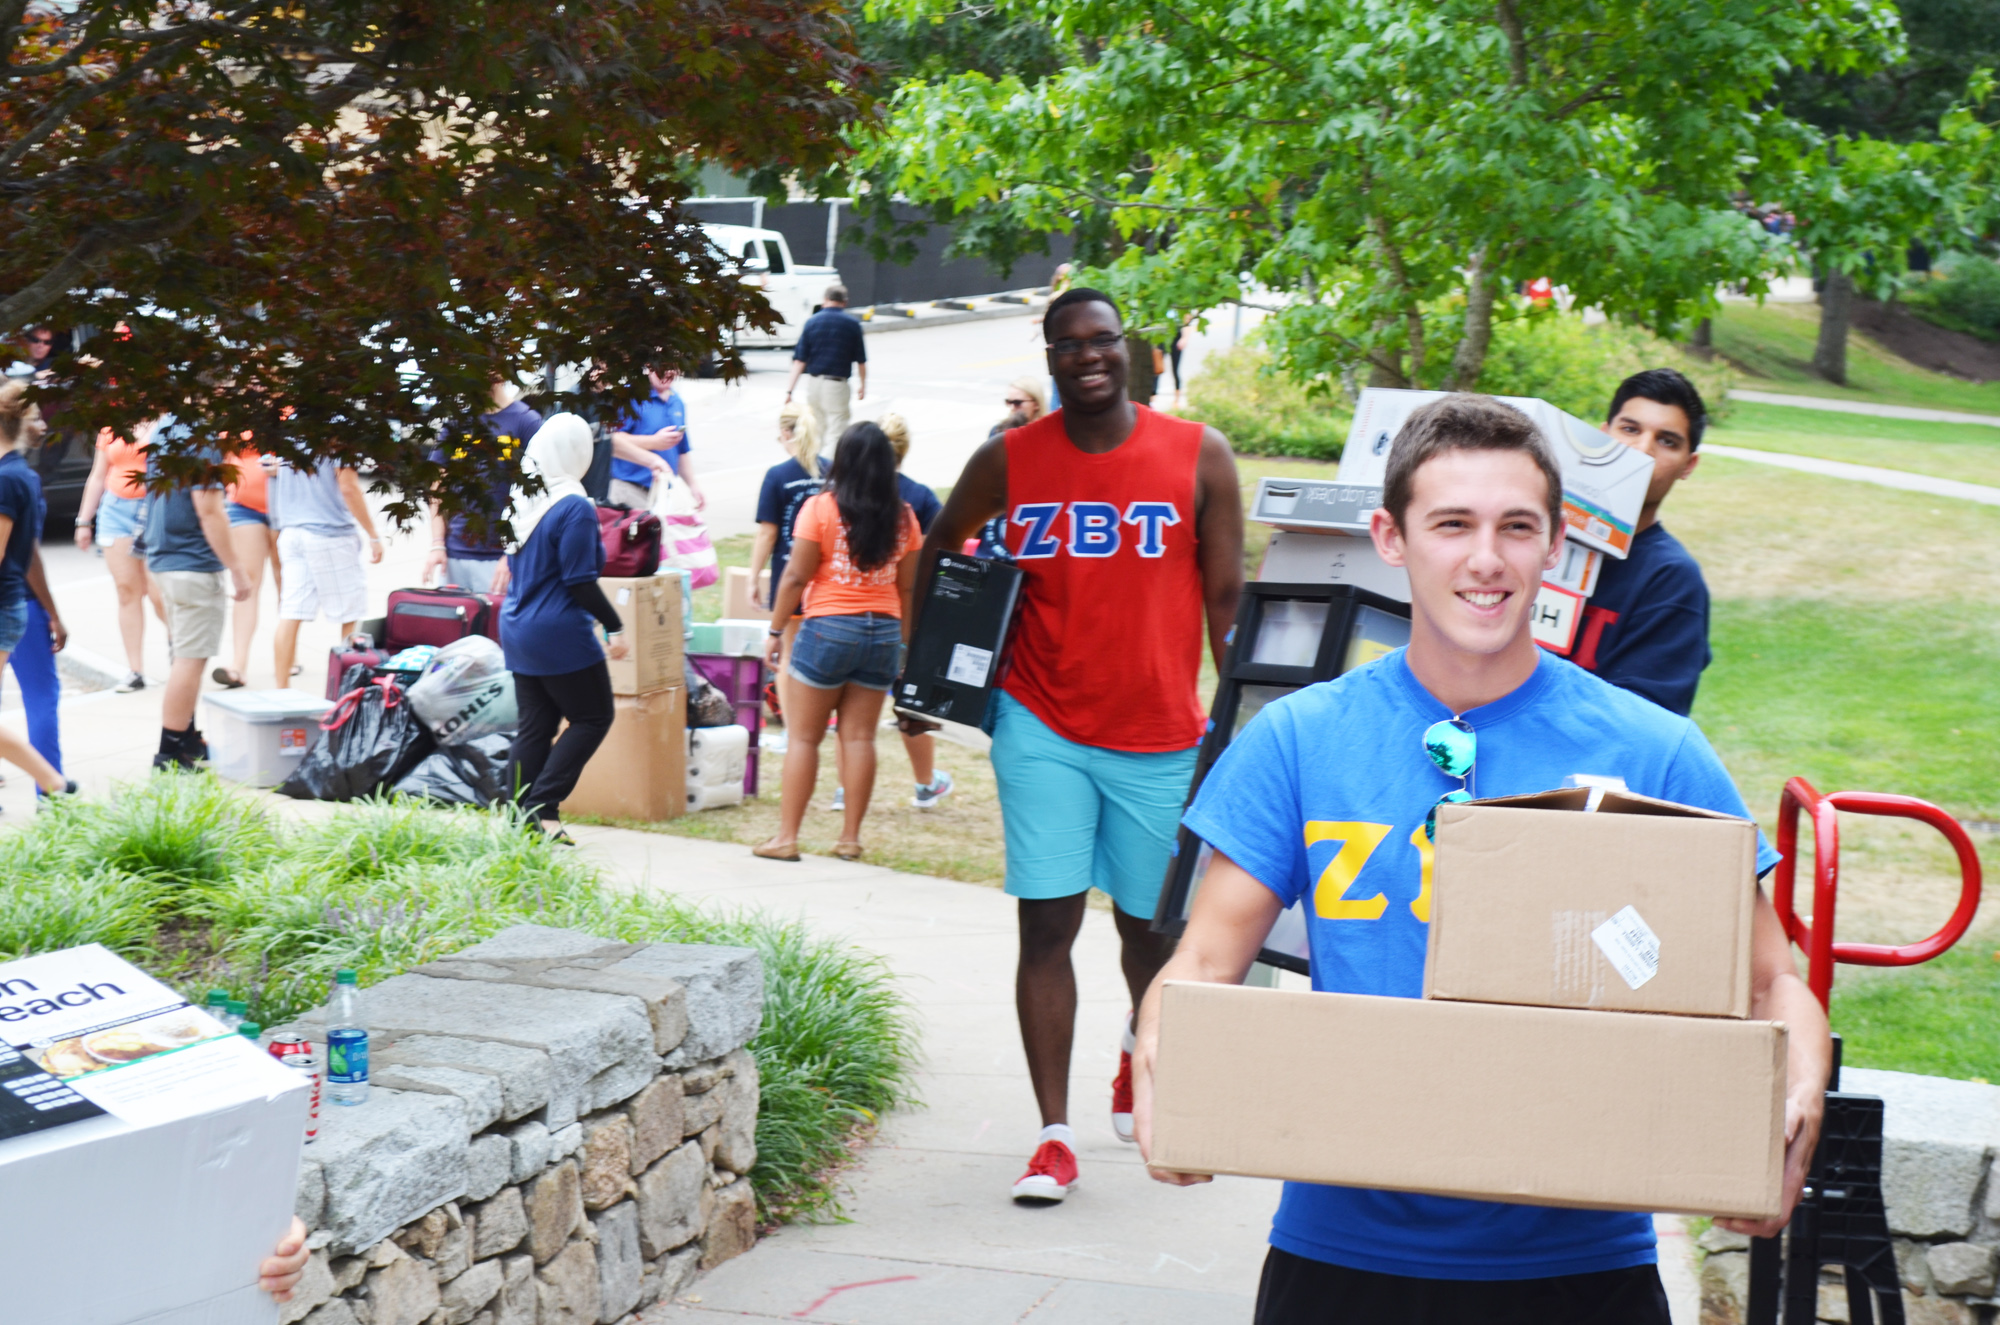 Scene from move-in day